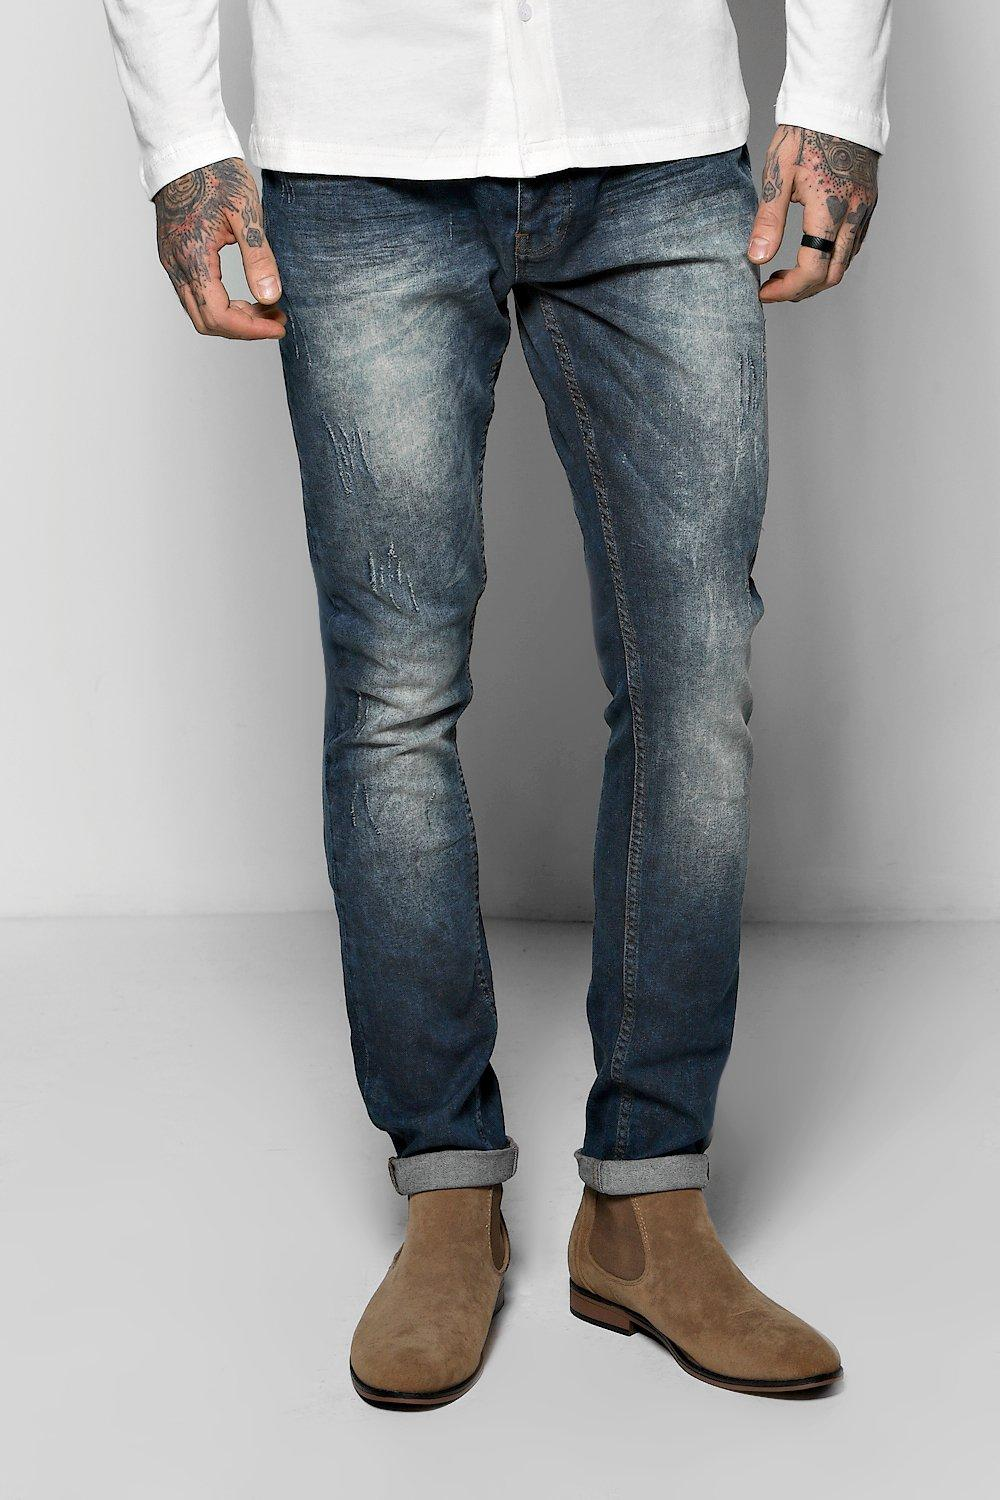 Stretch Skinny Fit Inidgo Acid Wash Jeans